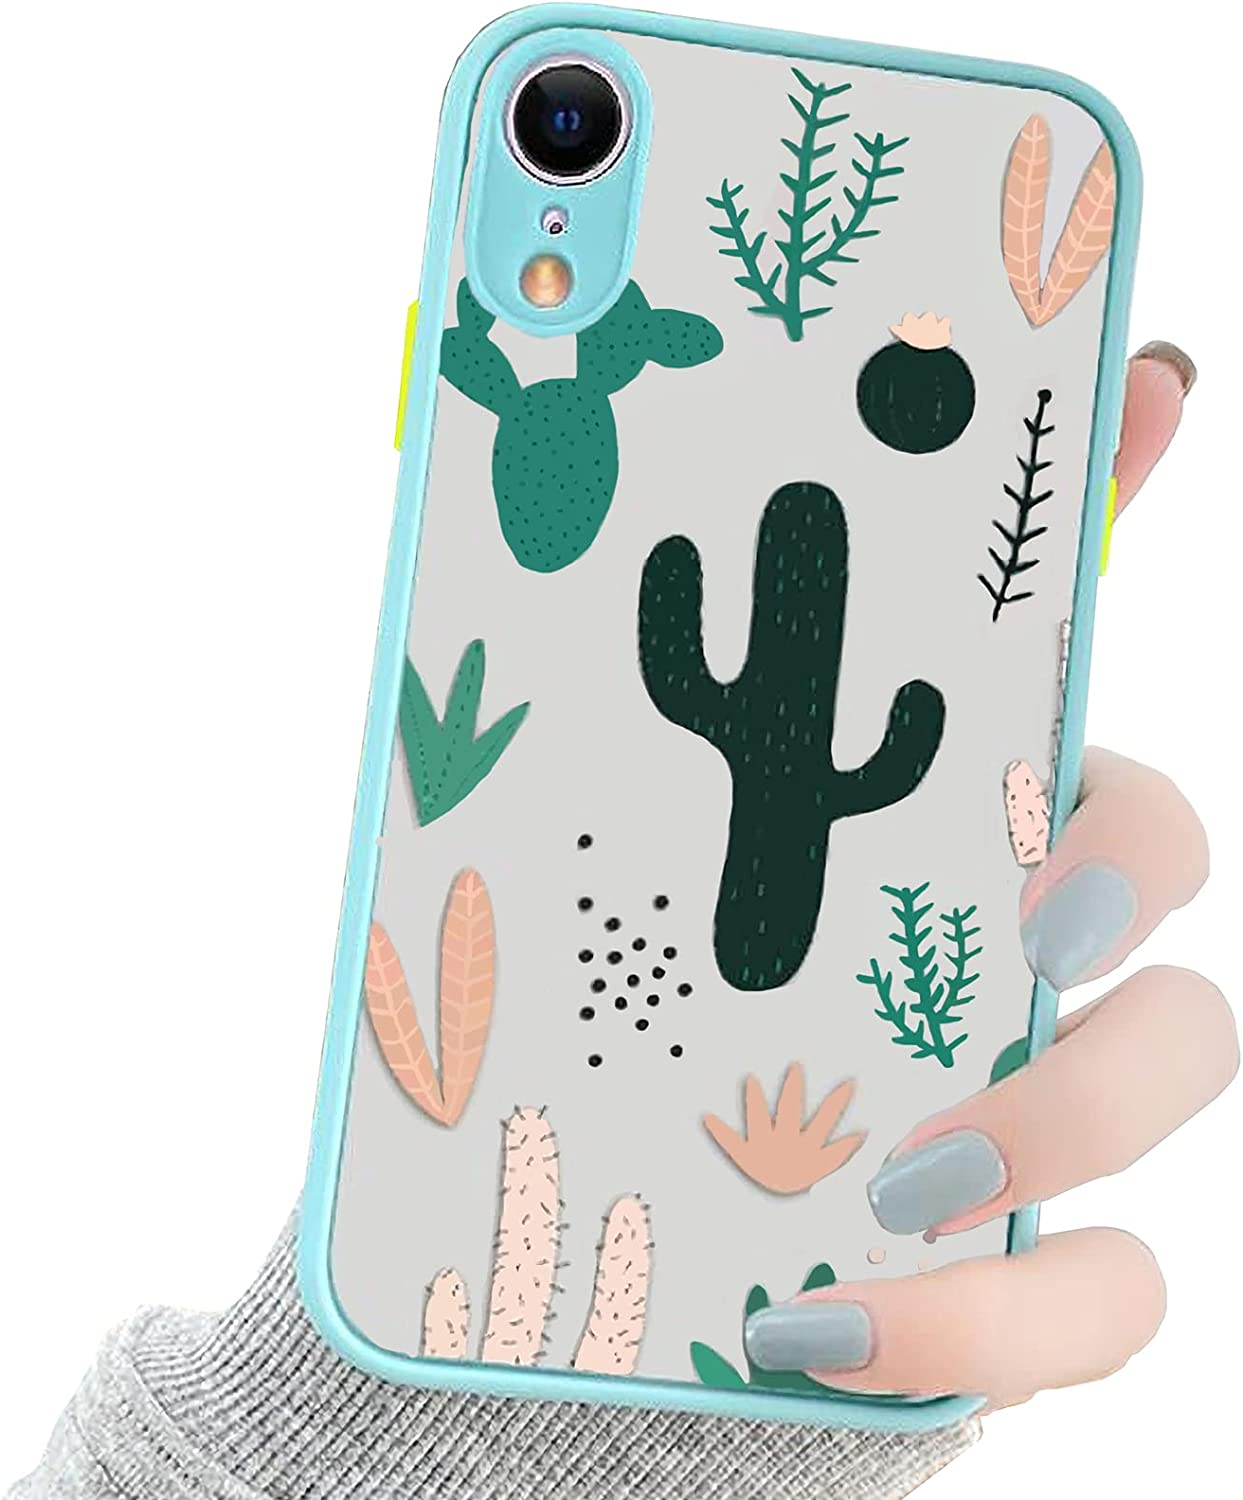 OTTARTAKS iPhone XR Case Clear Design, Cute Cactus iPhoneXR Case for Girls Women 3D Cartoon, Slim Fit Shockproof PC Back and Soft TPU Bumper Protective Case for iPhone XR 6.1inch, Green